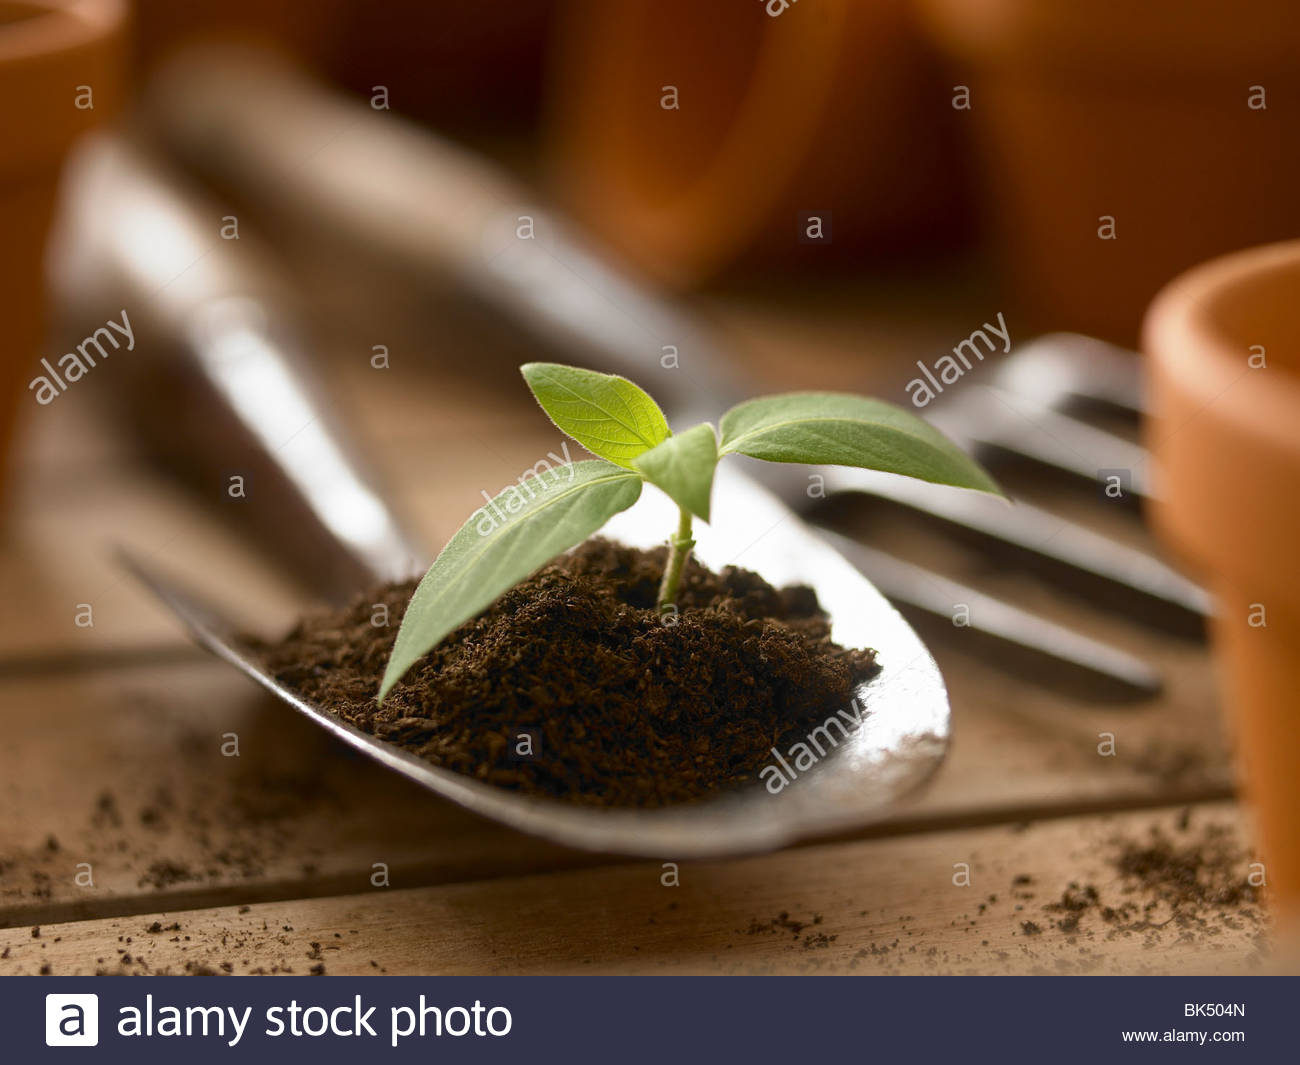 Close up of seedling growing in dirt on trowel - Stock Image